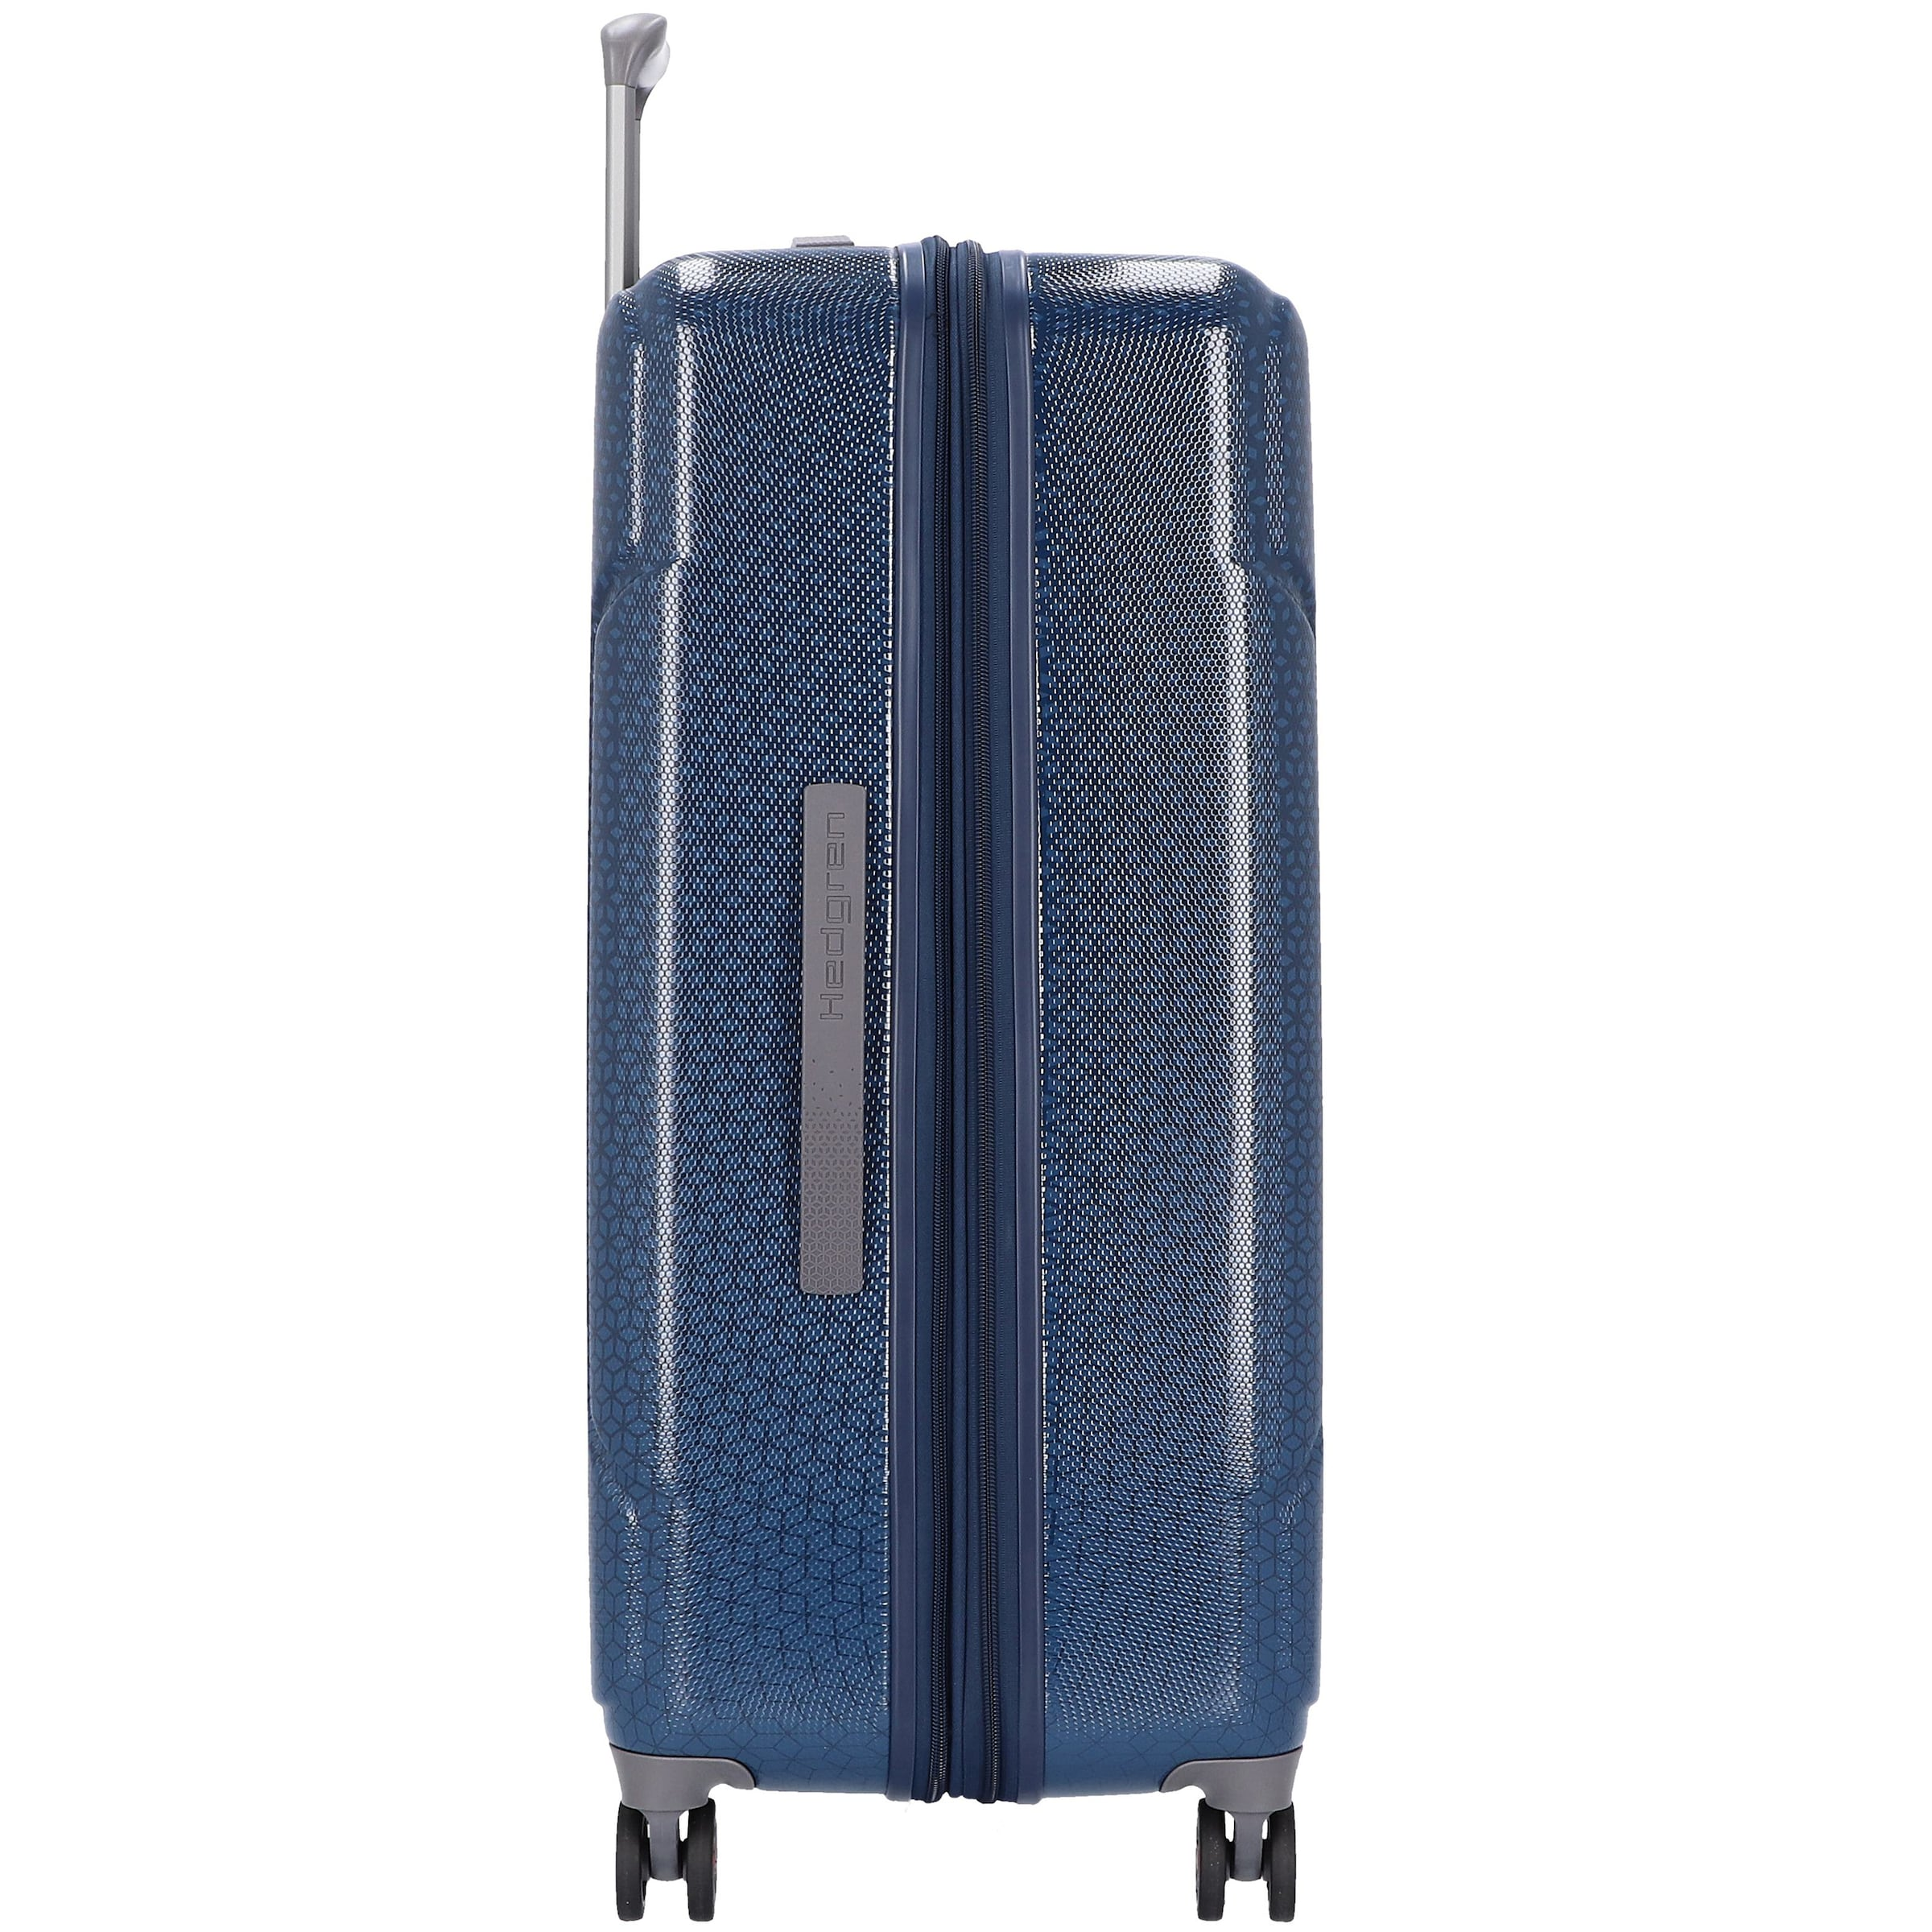 Trolley Hedgren 'freestyle 4 In L Glide rollen' Blau dCBrxQoeW